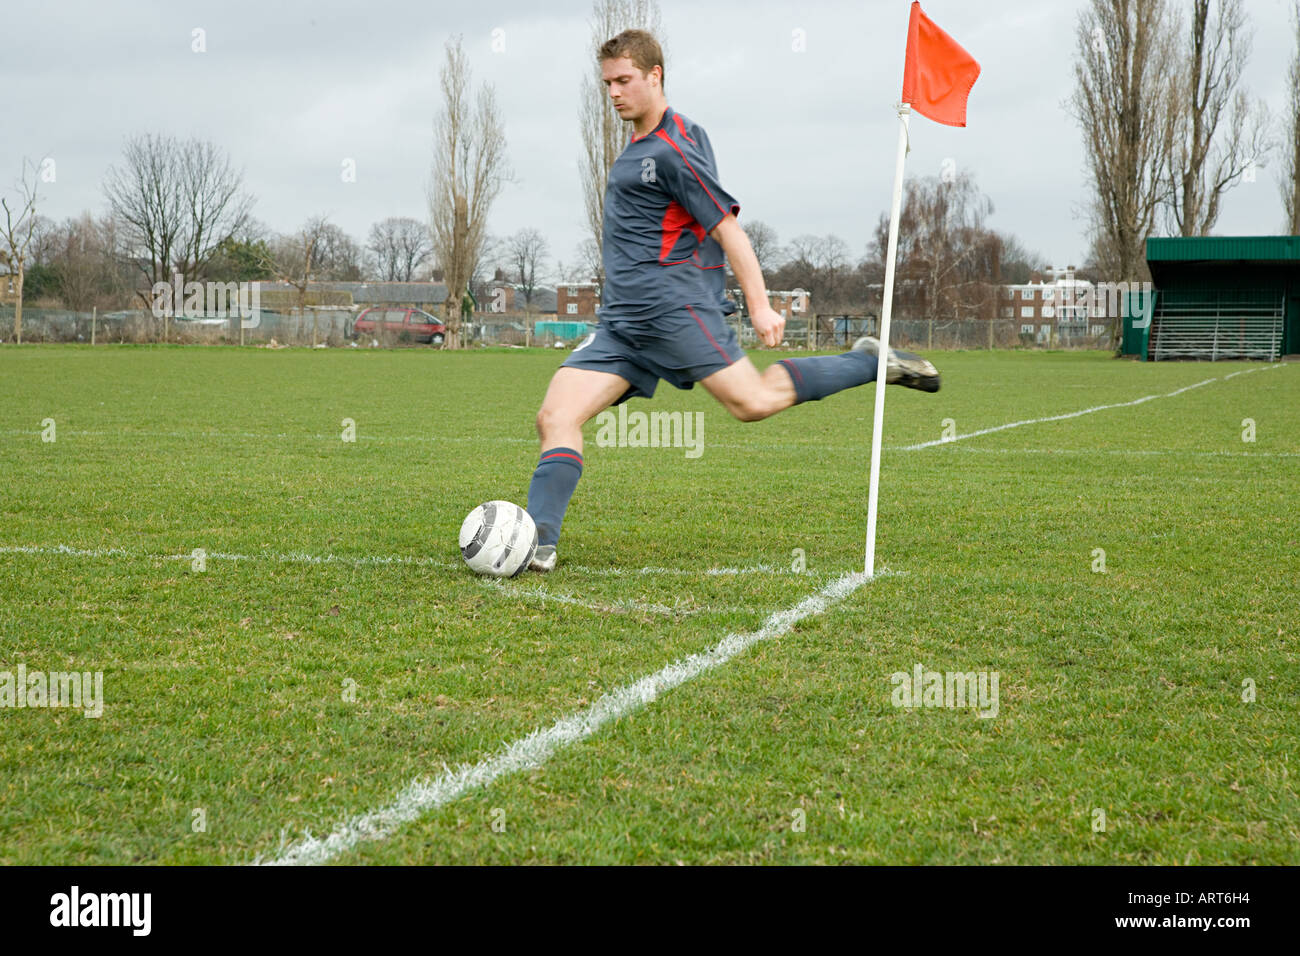 Footballer taking a corner kick - Stock Image